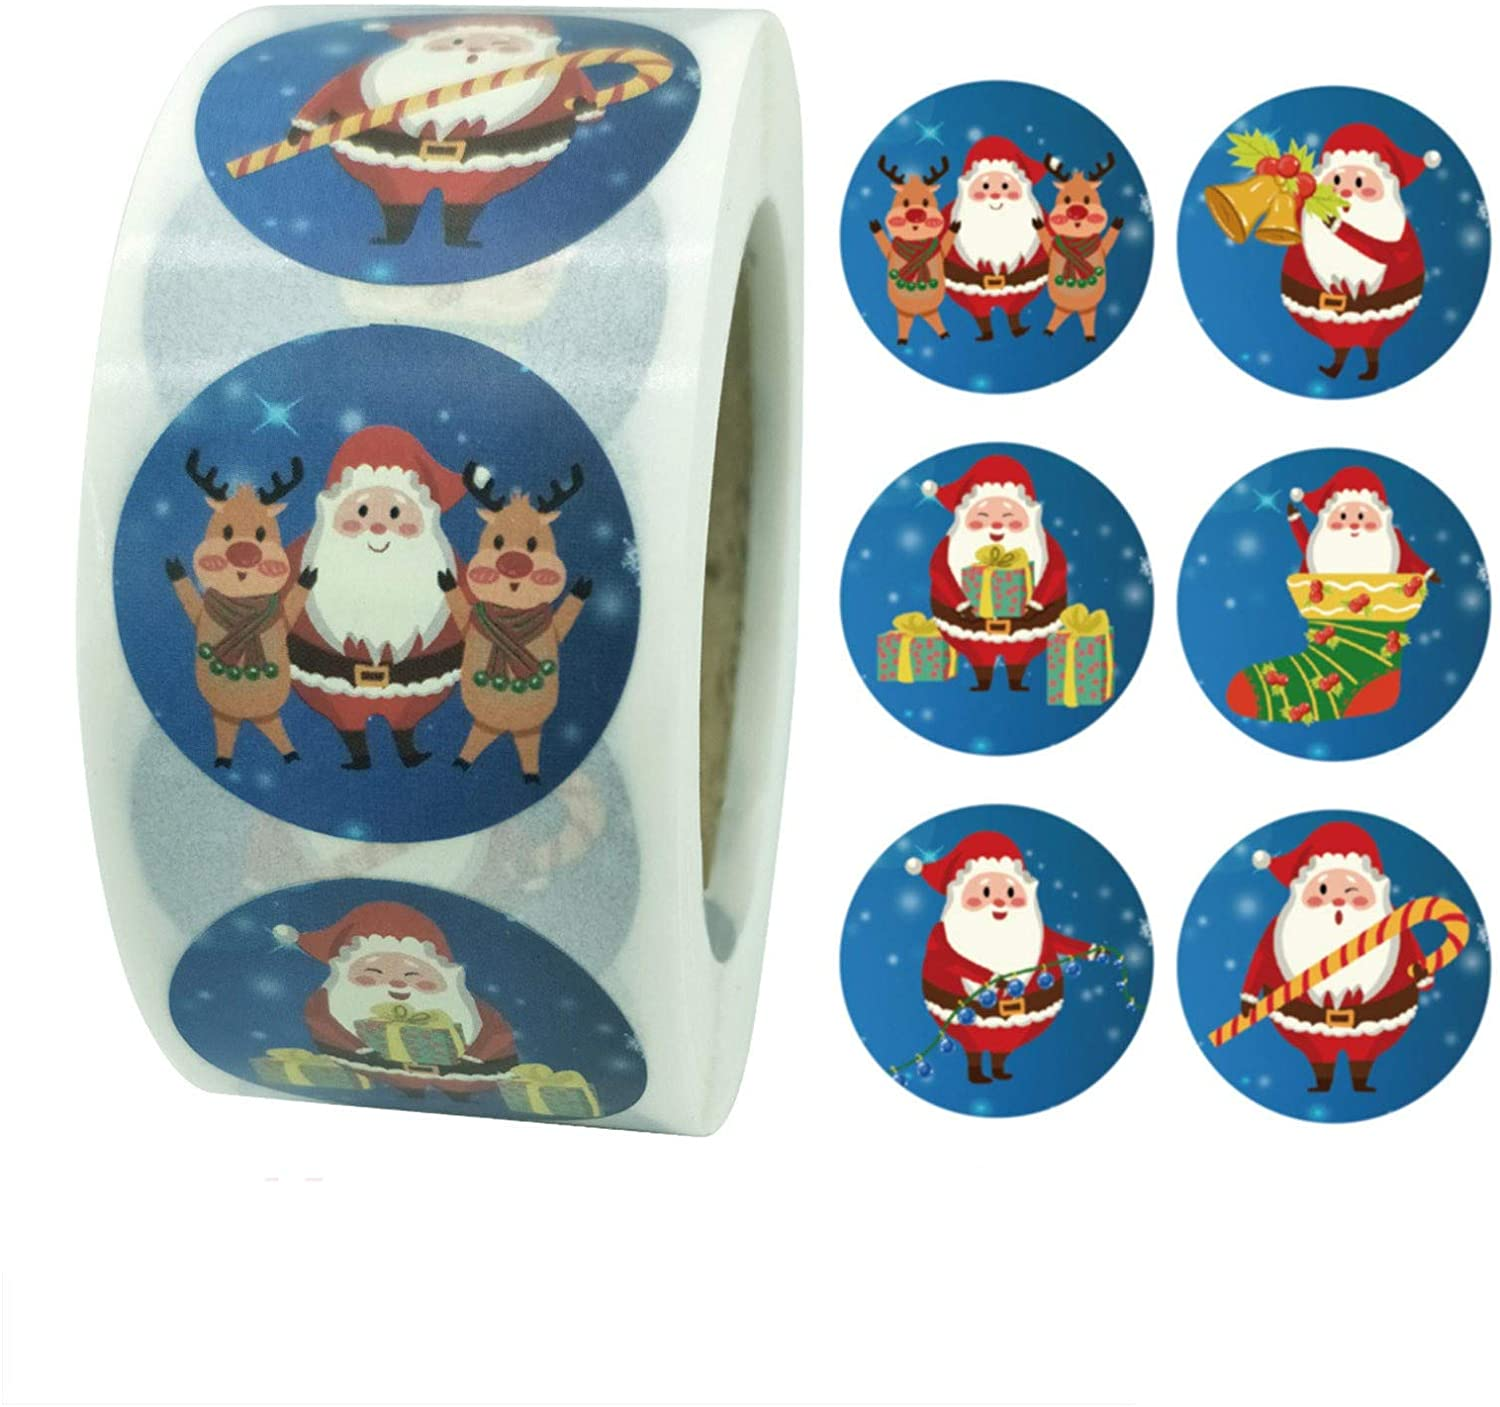 YuanYang hotpot Christmas Stickers, 500 Pieces Christmas Round Label Stickers Christmas Envelope Stickers Seals for Cards Present Envelopes Boxes Bag Sealing Decorations (B)